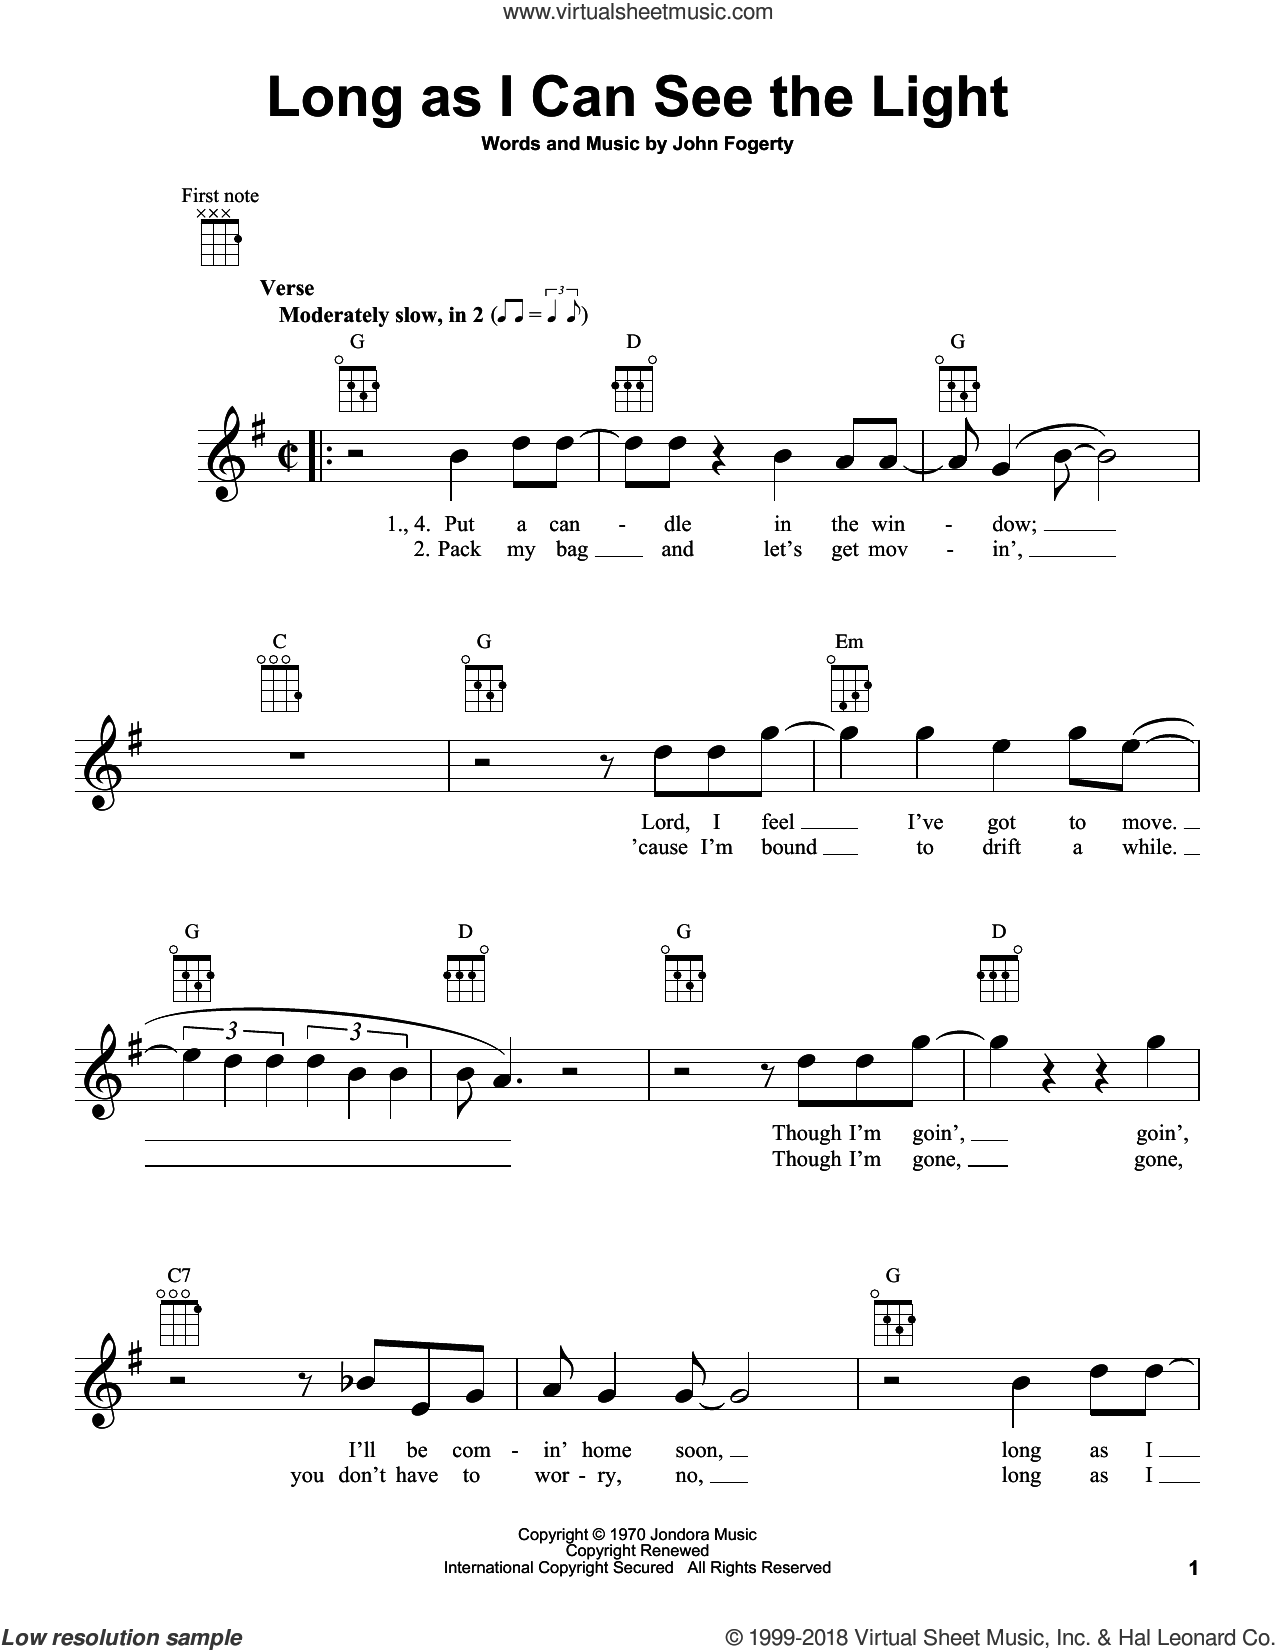 Long As I Can See The Light sheet music for ukulele by Creedence Clearwater Revival and John Fogerty, intermediate skill level